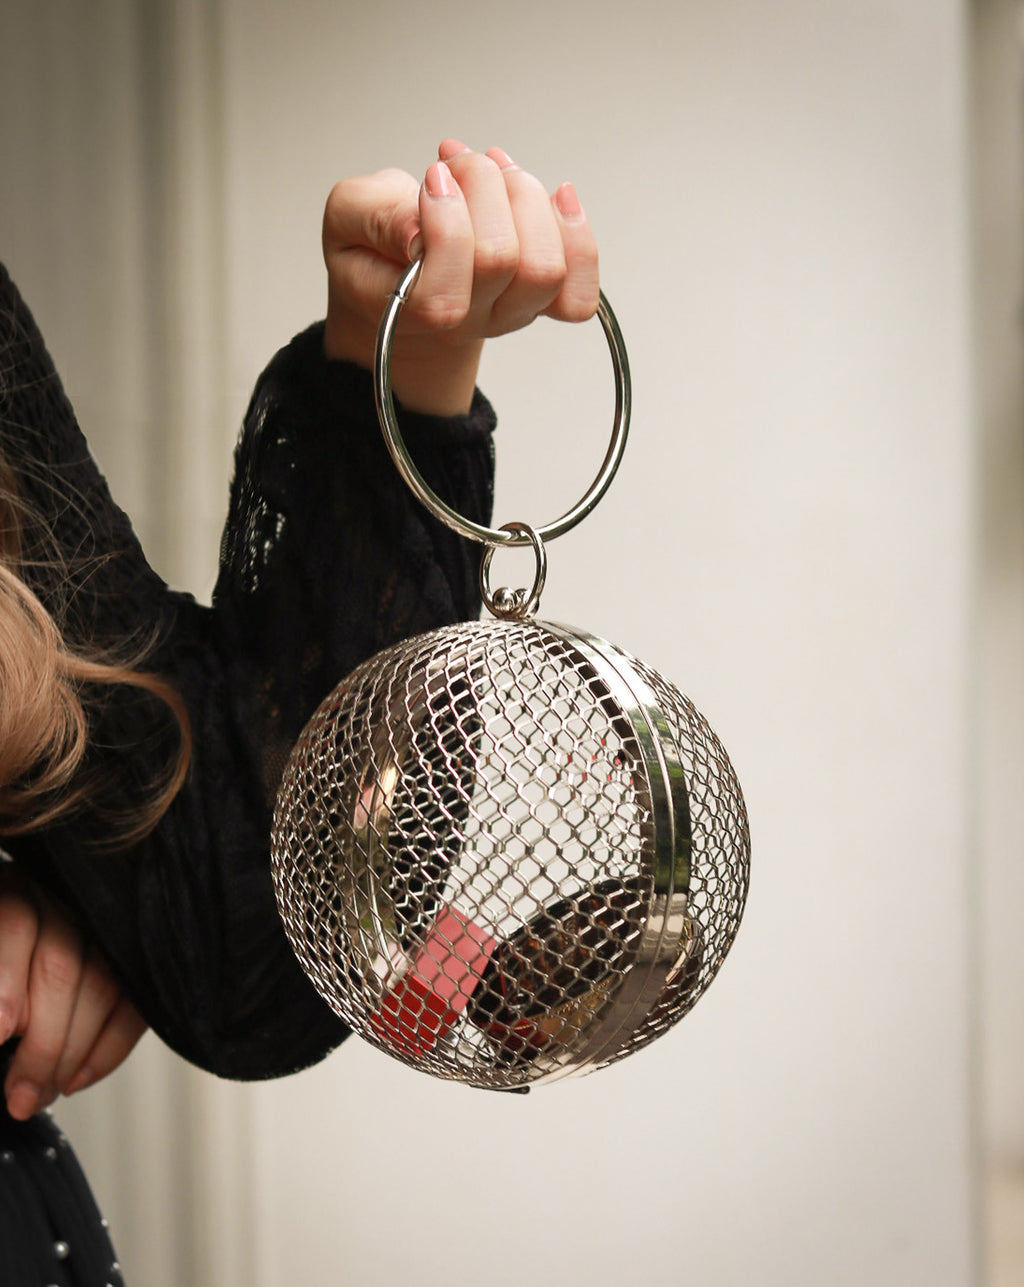 Crater Spherical Clutch Bag in Silver - The Hexad